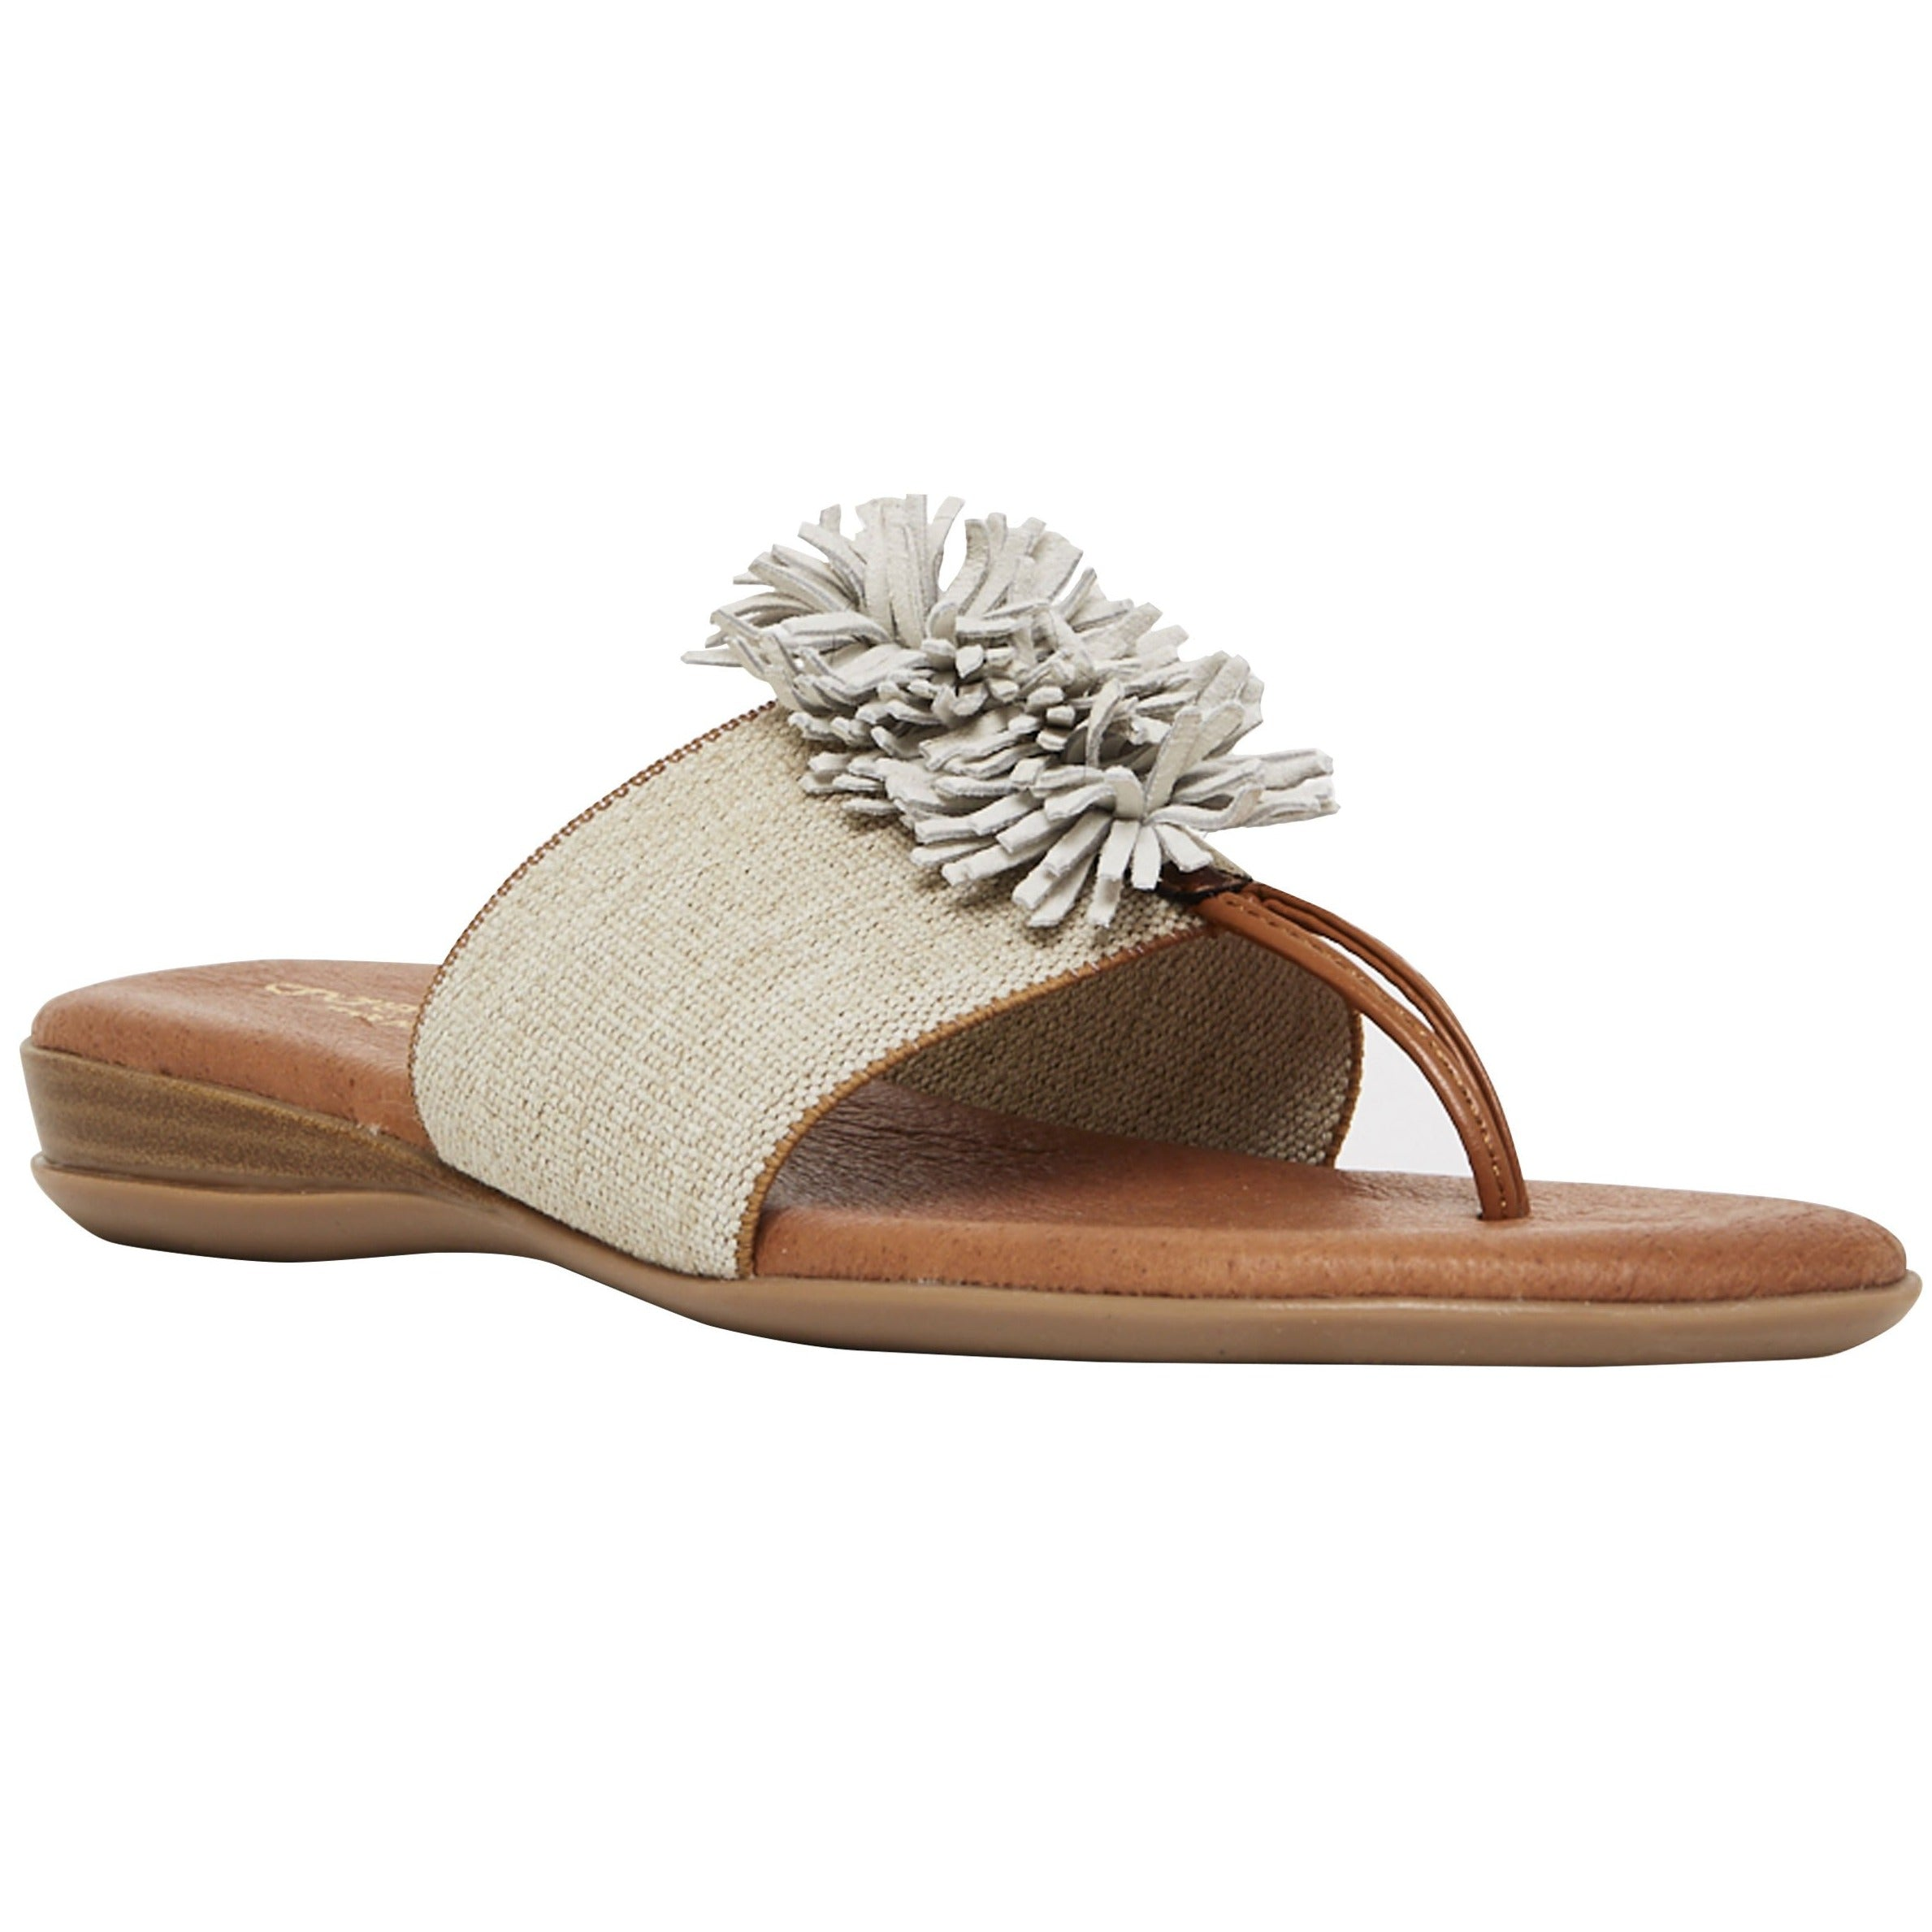 Slide on and go. The single band with festive puff decor adds a pop of fun to any ensemble. Feel delicious all day in memory foam cushioned insoles. Walking. Lunching. Boardwalk, brunch, dinner. Easy Breezy and So Cute.802568908107 802568908114 802568908121 802568908138 802568908145 802568908152 802568908169 802568908169 andre assous Novalee - The Elastic Thong Sandal in Beige Linen